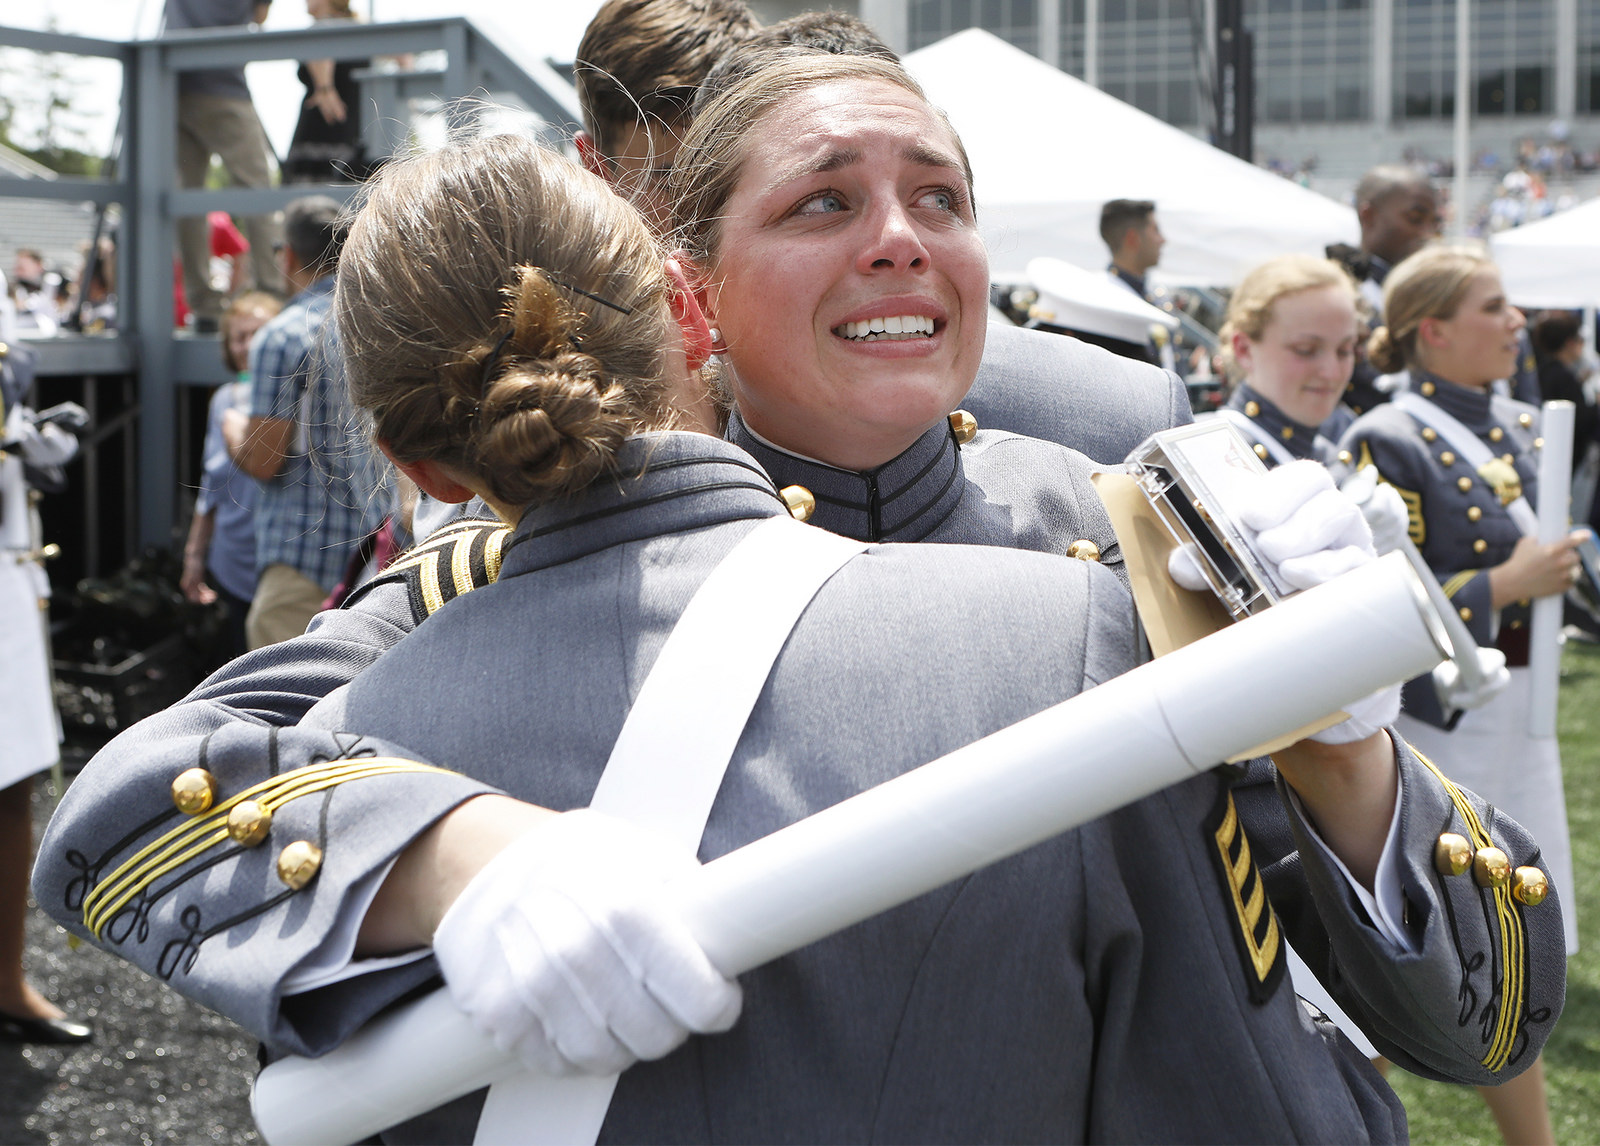 The U.S. Military Academy at West Point held its graduation and commissioning ceremony for the Class of 2018 at Michie Stadium in West Point, N.Y., May 26, 2018. (U.S. Military Academy)